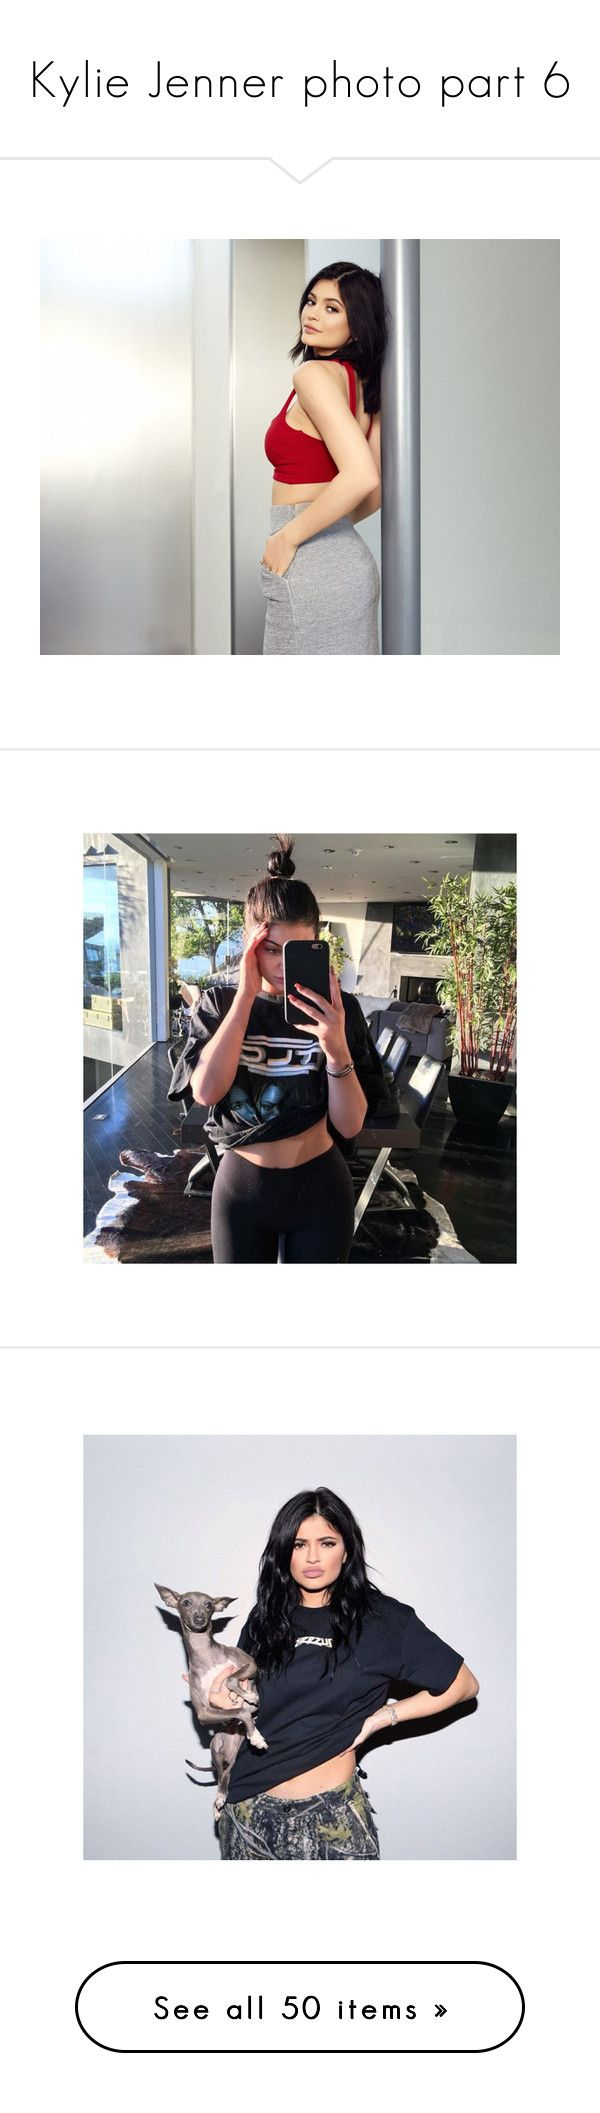 """""""Kylie Jenner photo part 6"""" by milenn-h ❤ liked on Polyvore featuring kylie, kylie jenner, girls, hair, jenner, pictures, home, home decor, frames and hairstyle"""